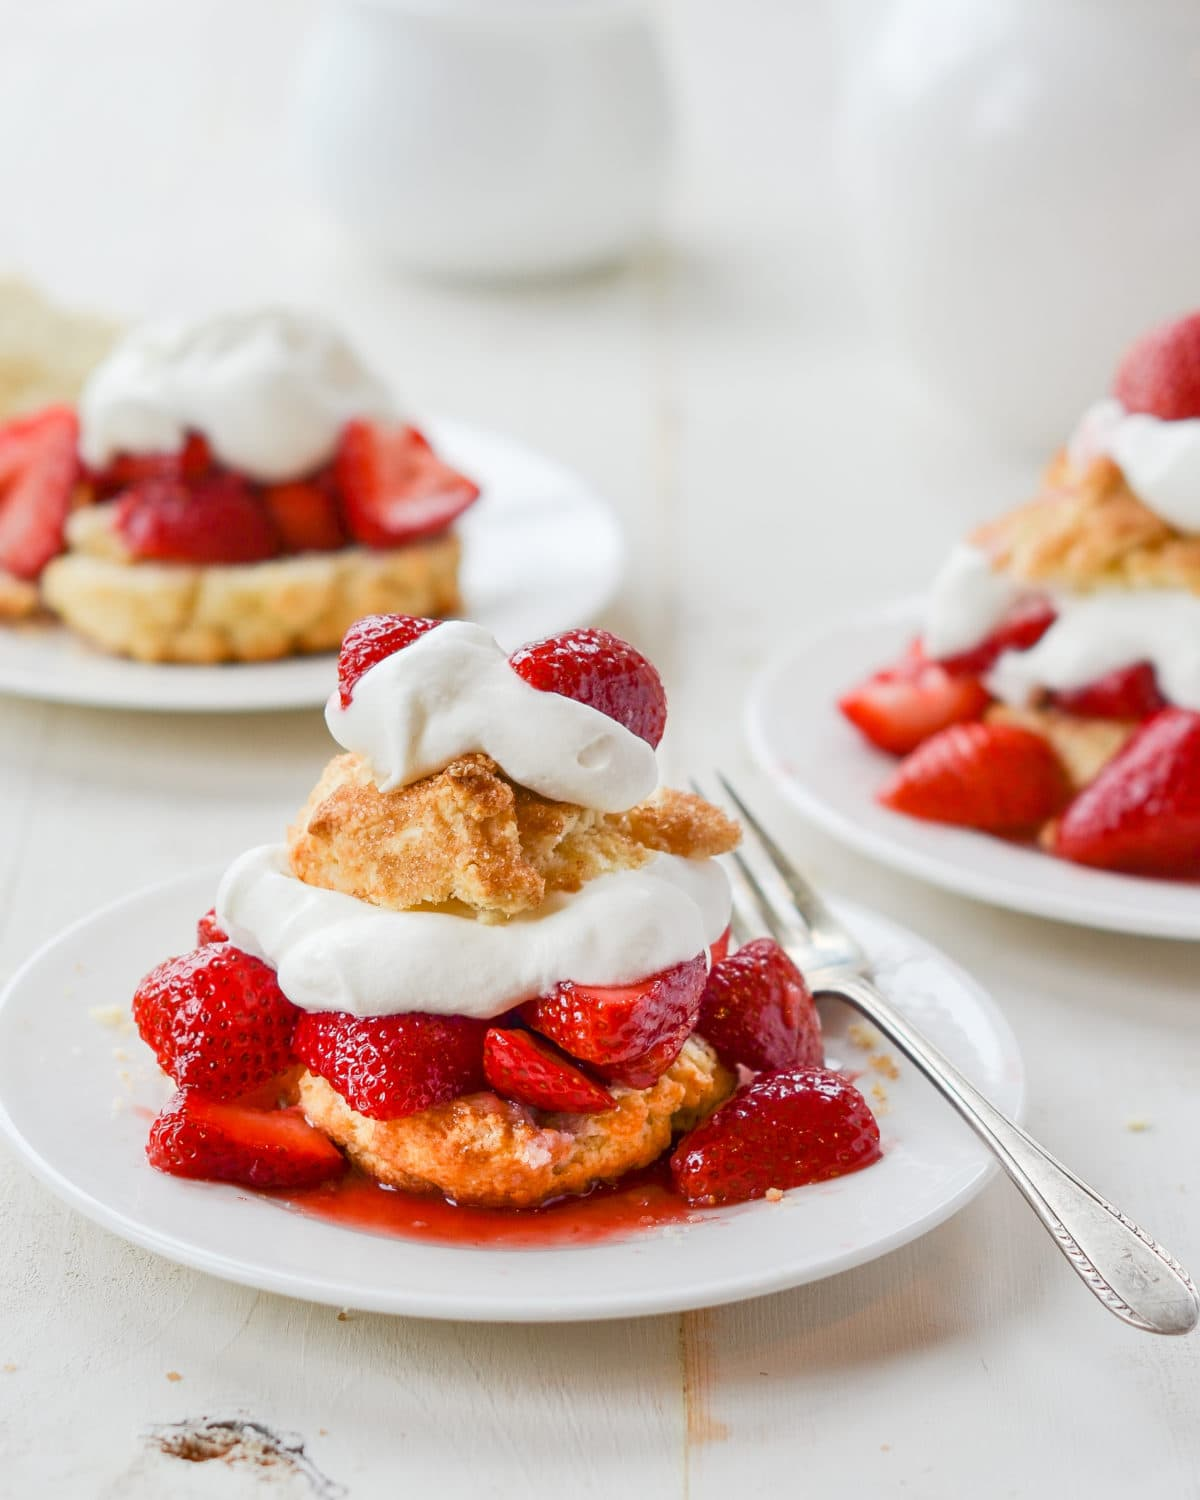 Strawberry Shortcake layered with biscuit, strawberries, and cream on a plate